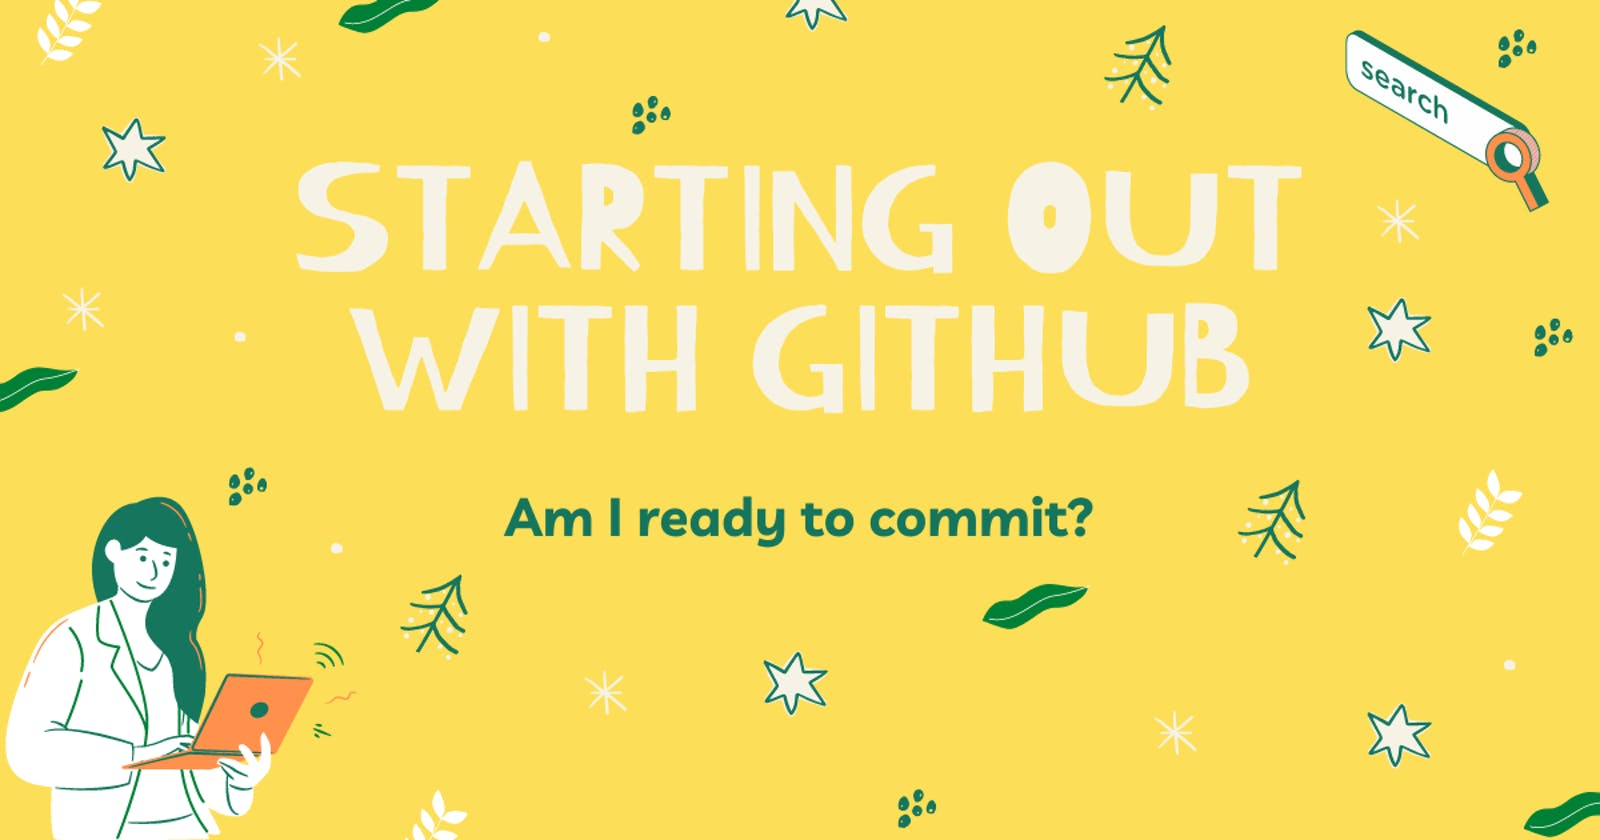 Where am I supposed to start with GitHub?